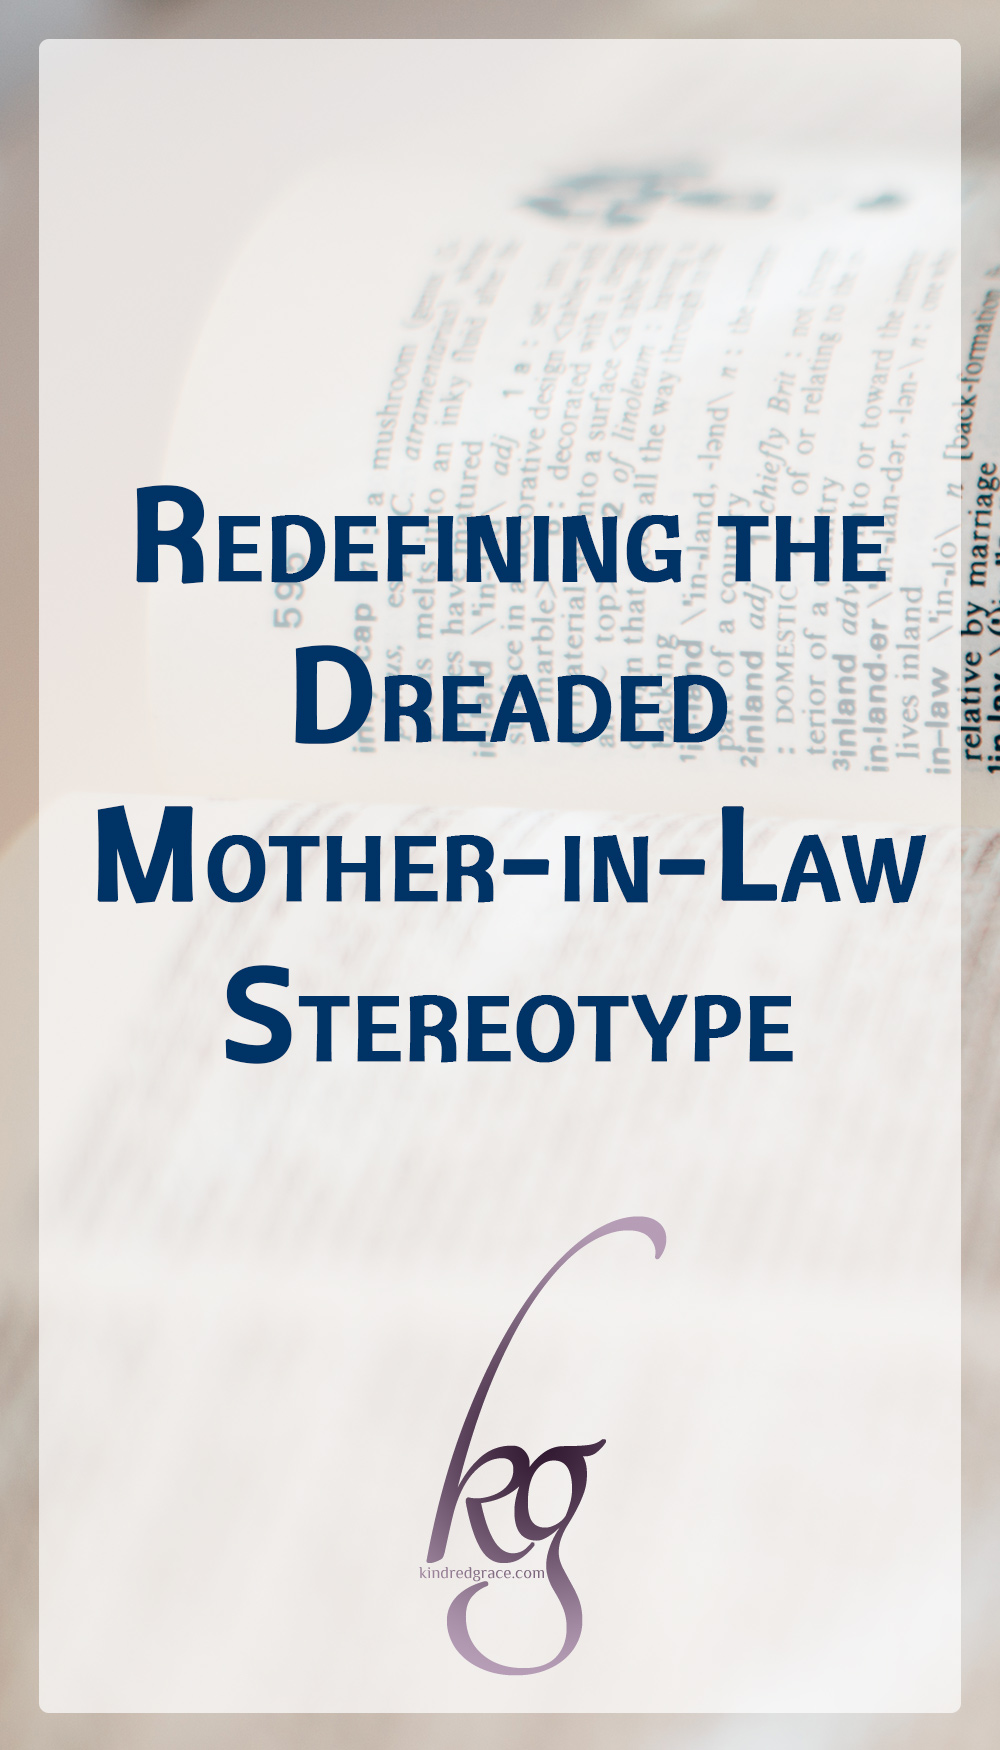 Redefining the Dreaded Mother-in-Law Stereotype via @KindredGrace